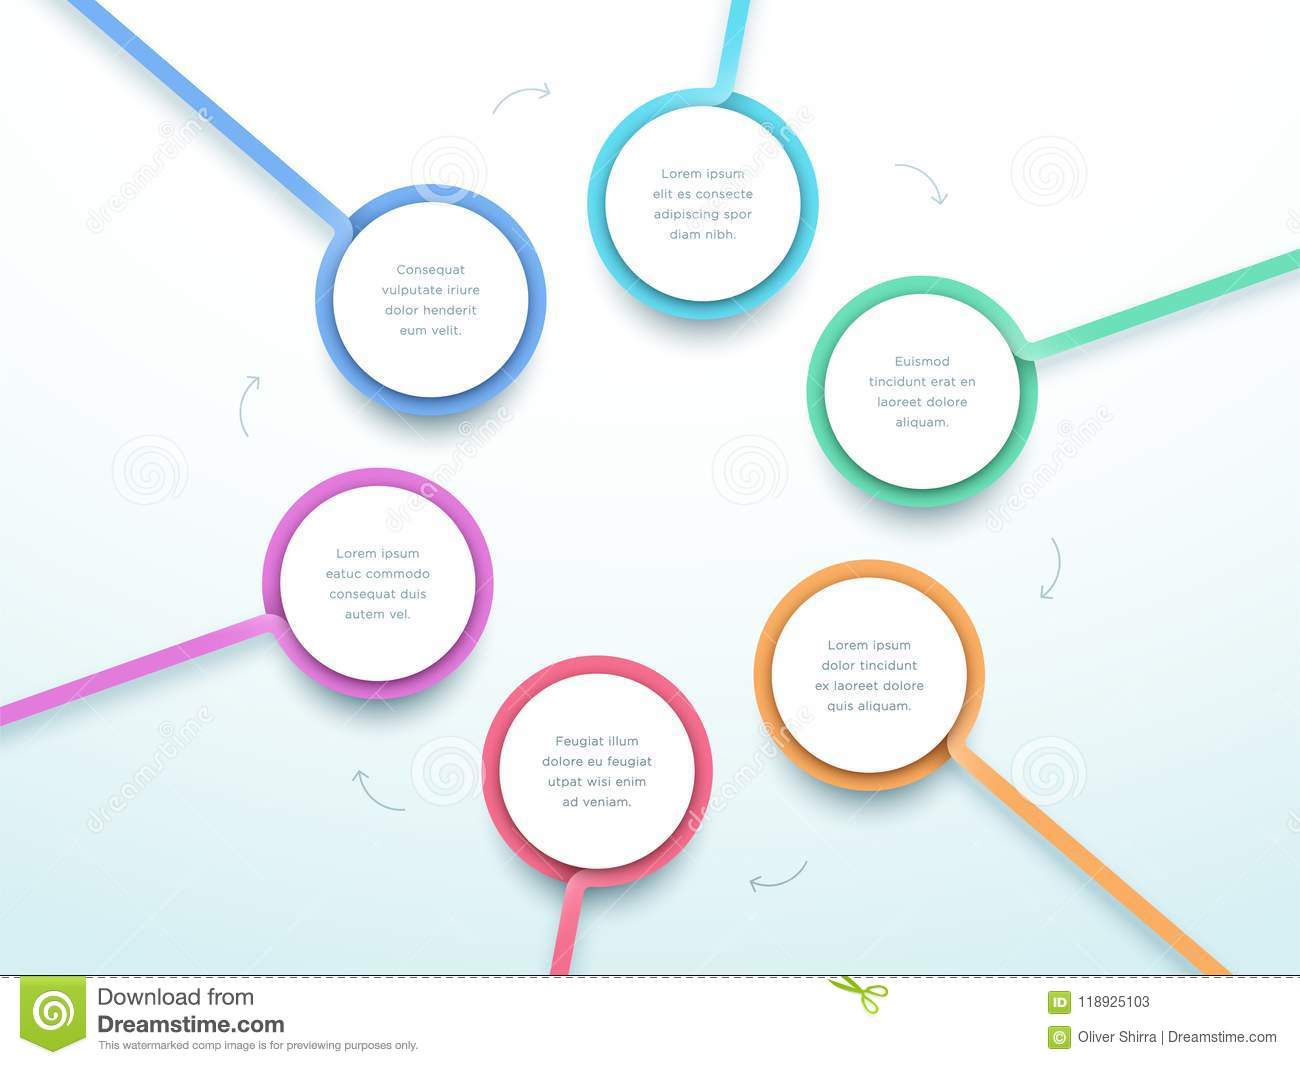 hight resolution of abstract vector 6 step cycle diagram made of colorful 3d circle frames with blank white space for text on a subtle gradient background made in illustrator